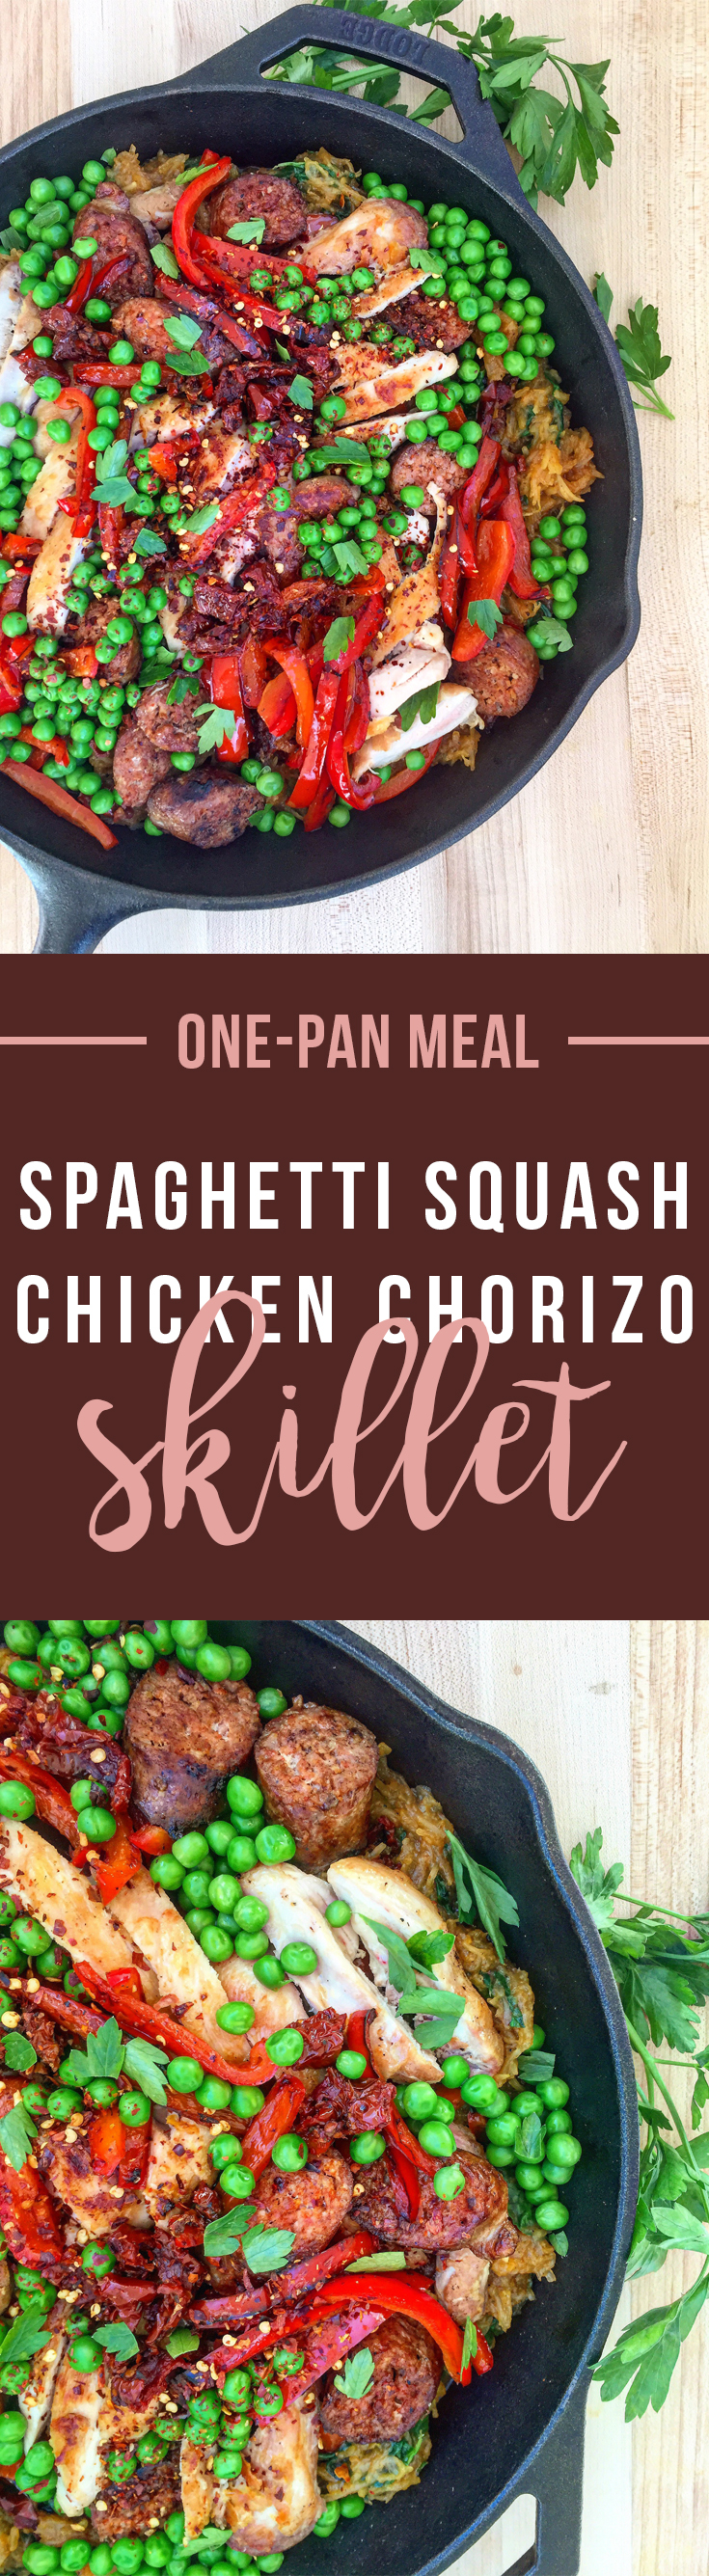 One Pan Meal: this Spaghetti Squash Chicken Chorizo Skillet keeps the mess and fuss to a minimum while delivering max flavor. Click to read the recipe or pin to save for later! | GrokGrub.com #onepanmeal #skilletcooking #paleo #healthy